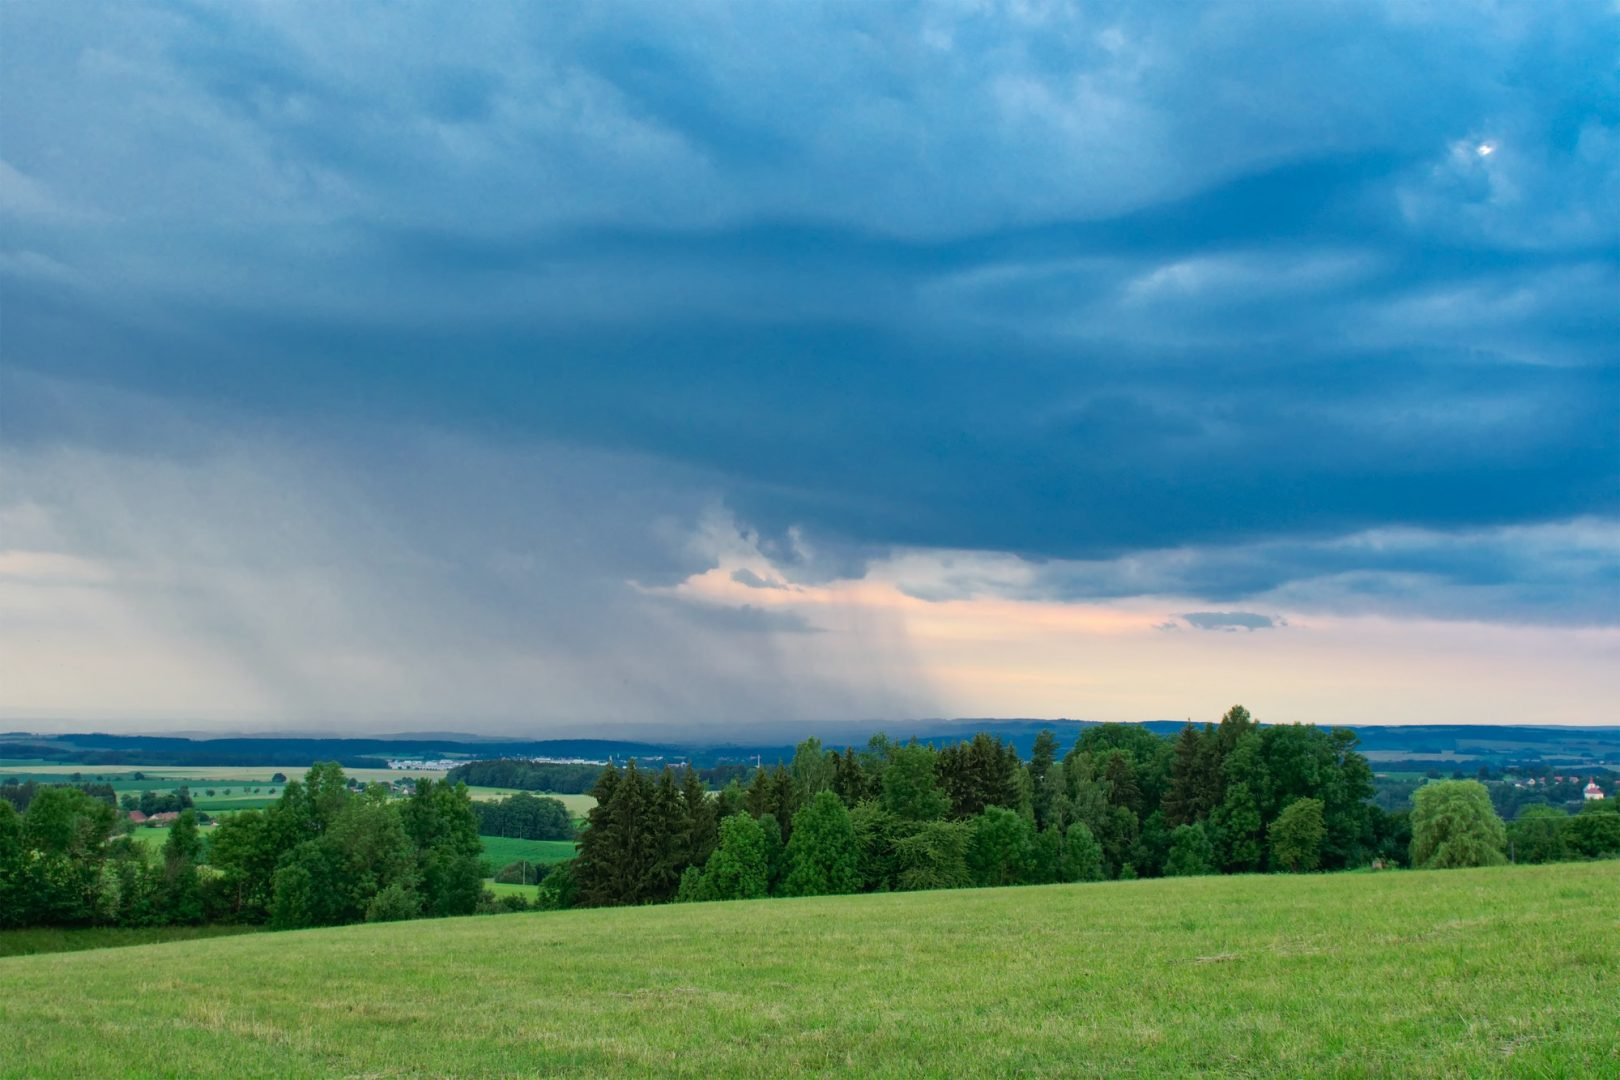 Beautiful storm clouds over land